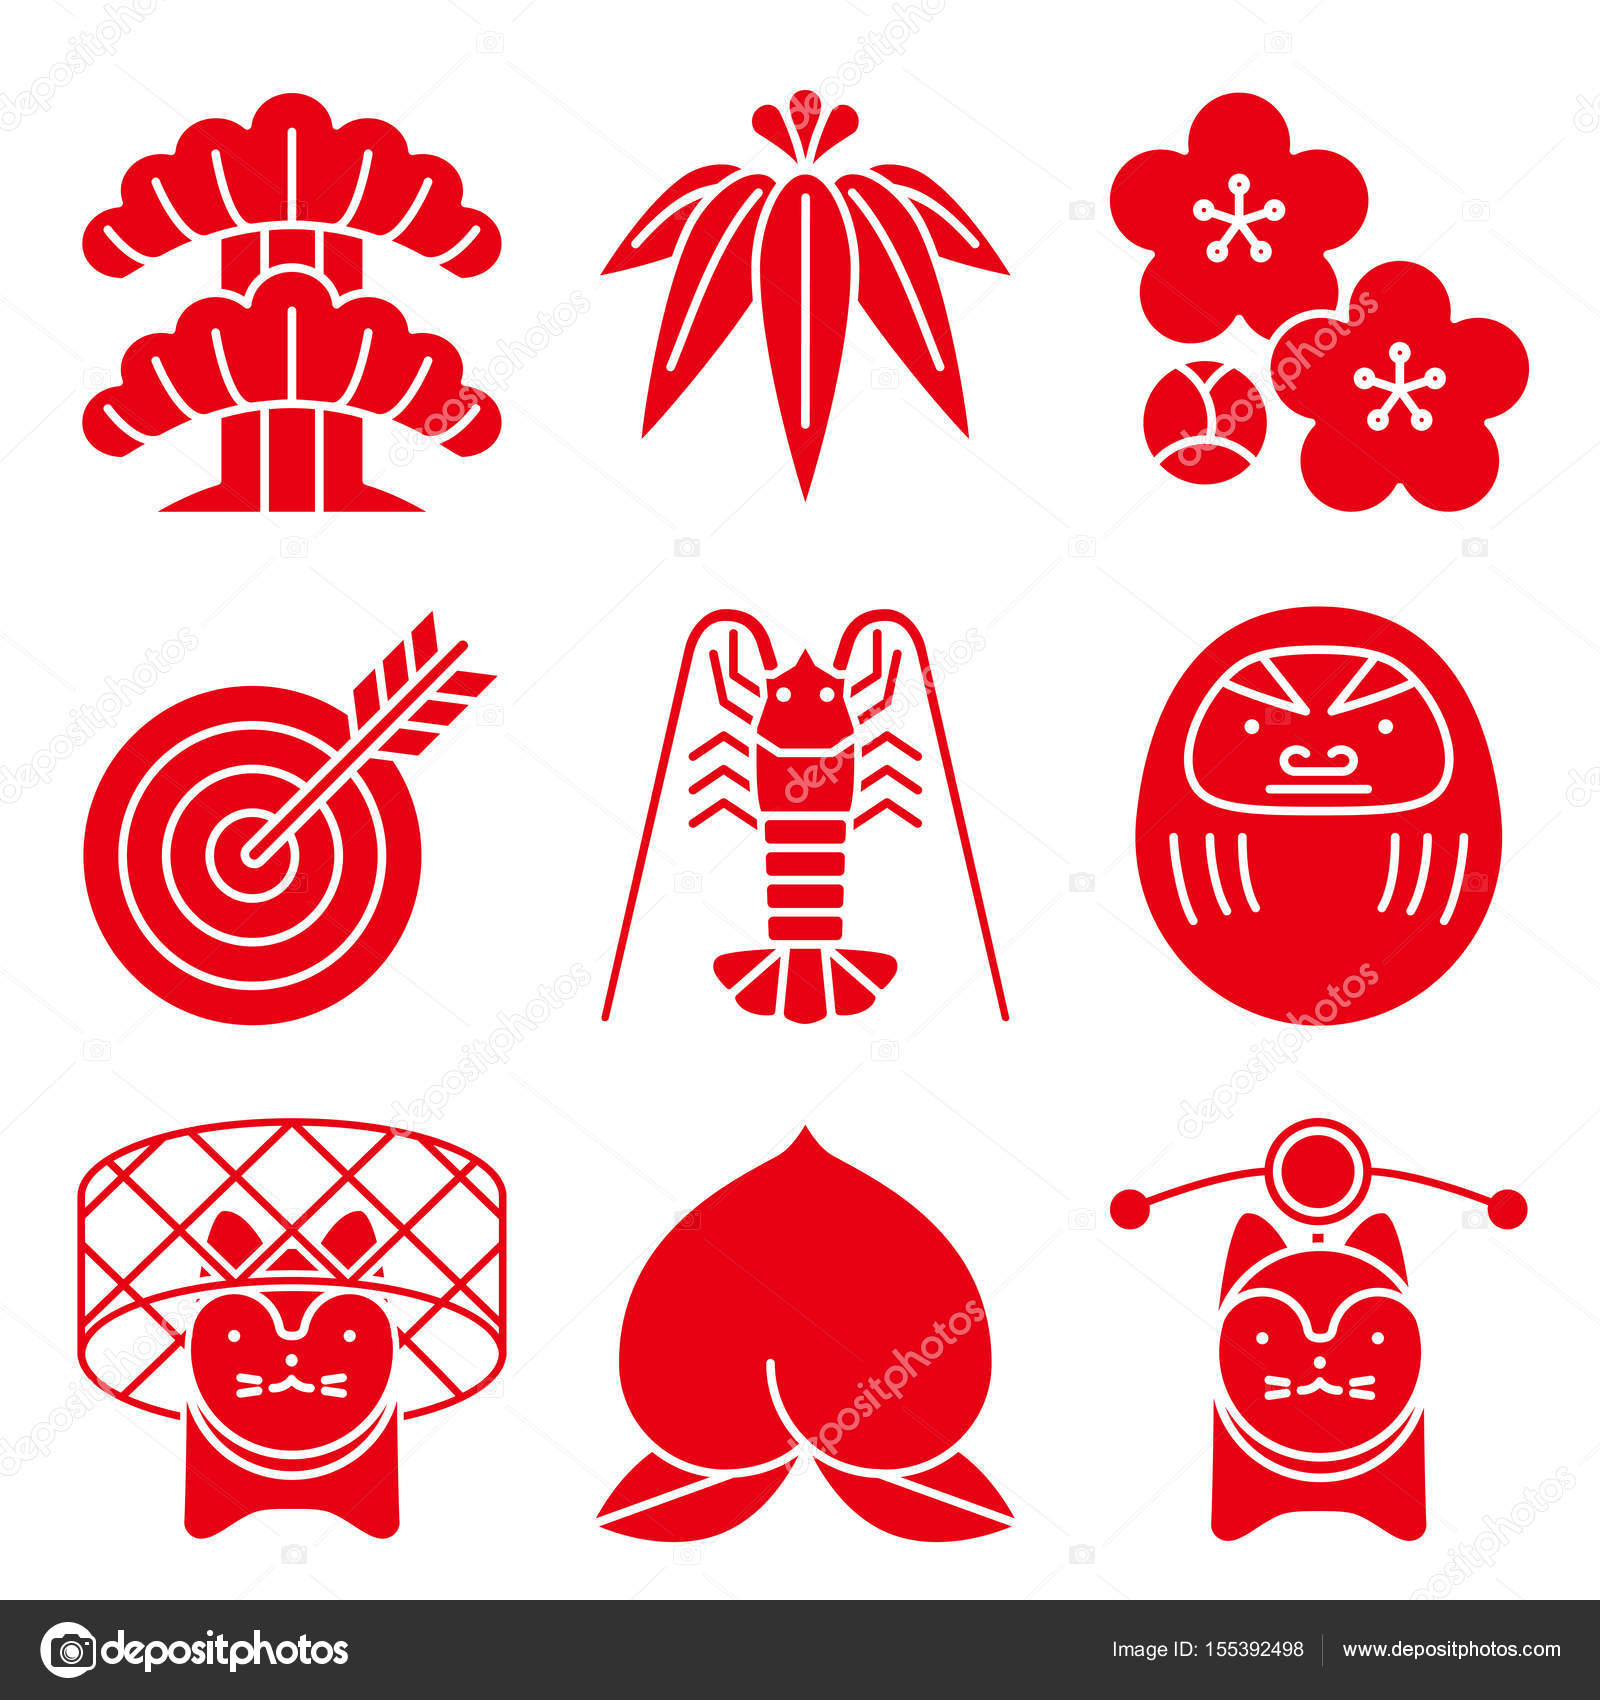 Good luck charms japanese style stock vector alphabetmn good luck charms japanese style vector by alphabetmn biocorpaavc Image collections